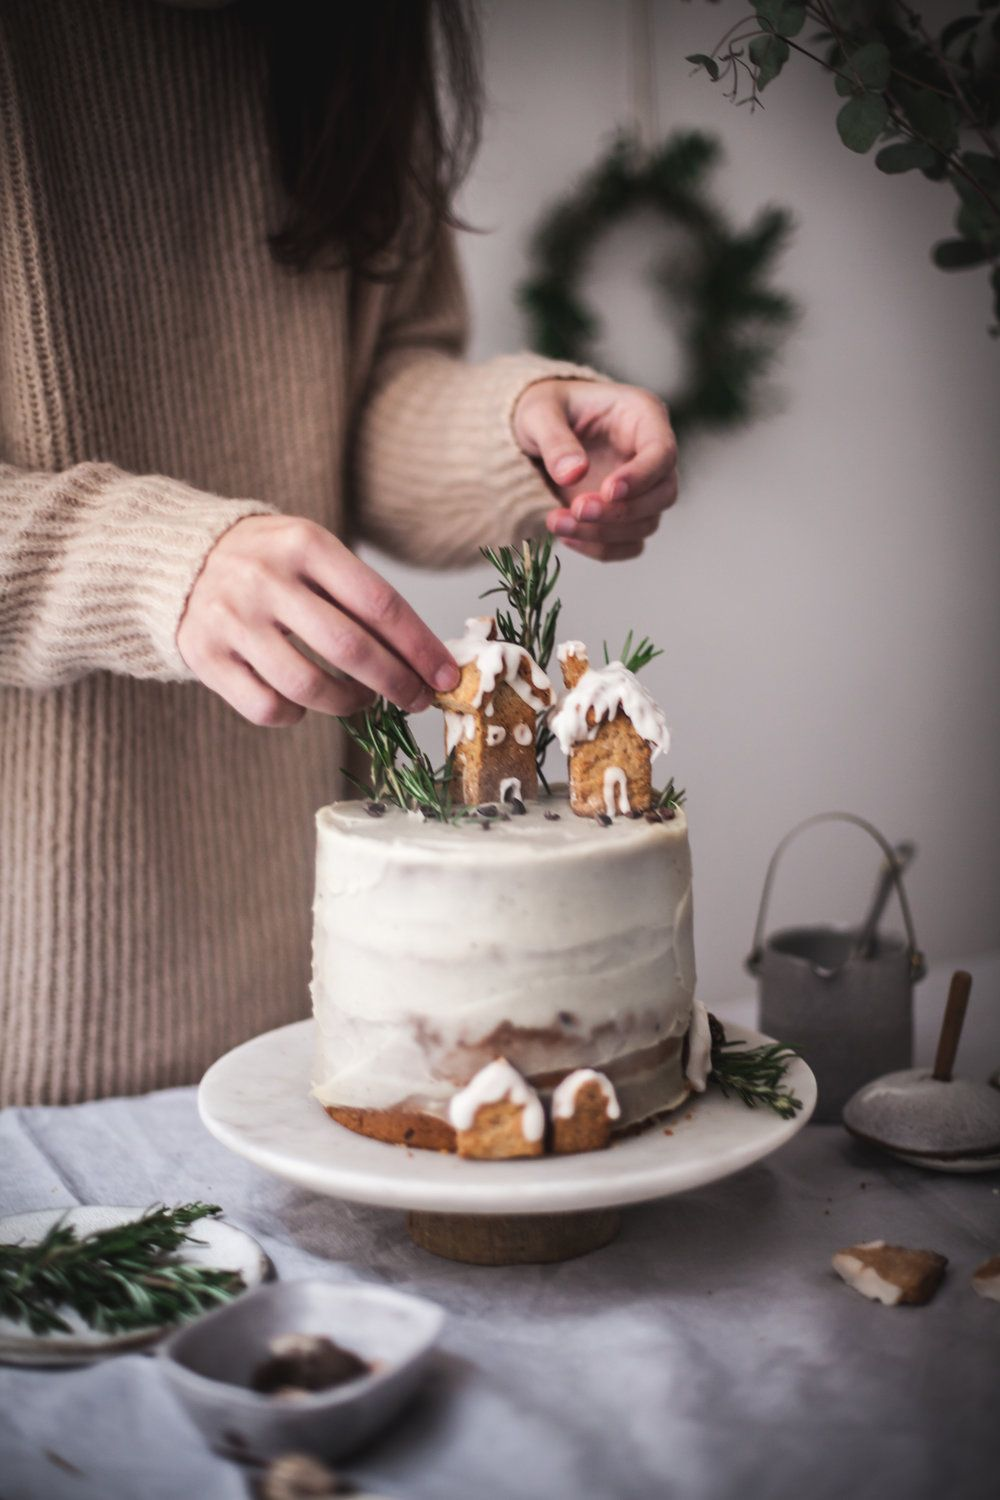 Christmas Cake with Chocolate & White Sweet Potato frosting #christmascake